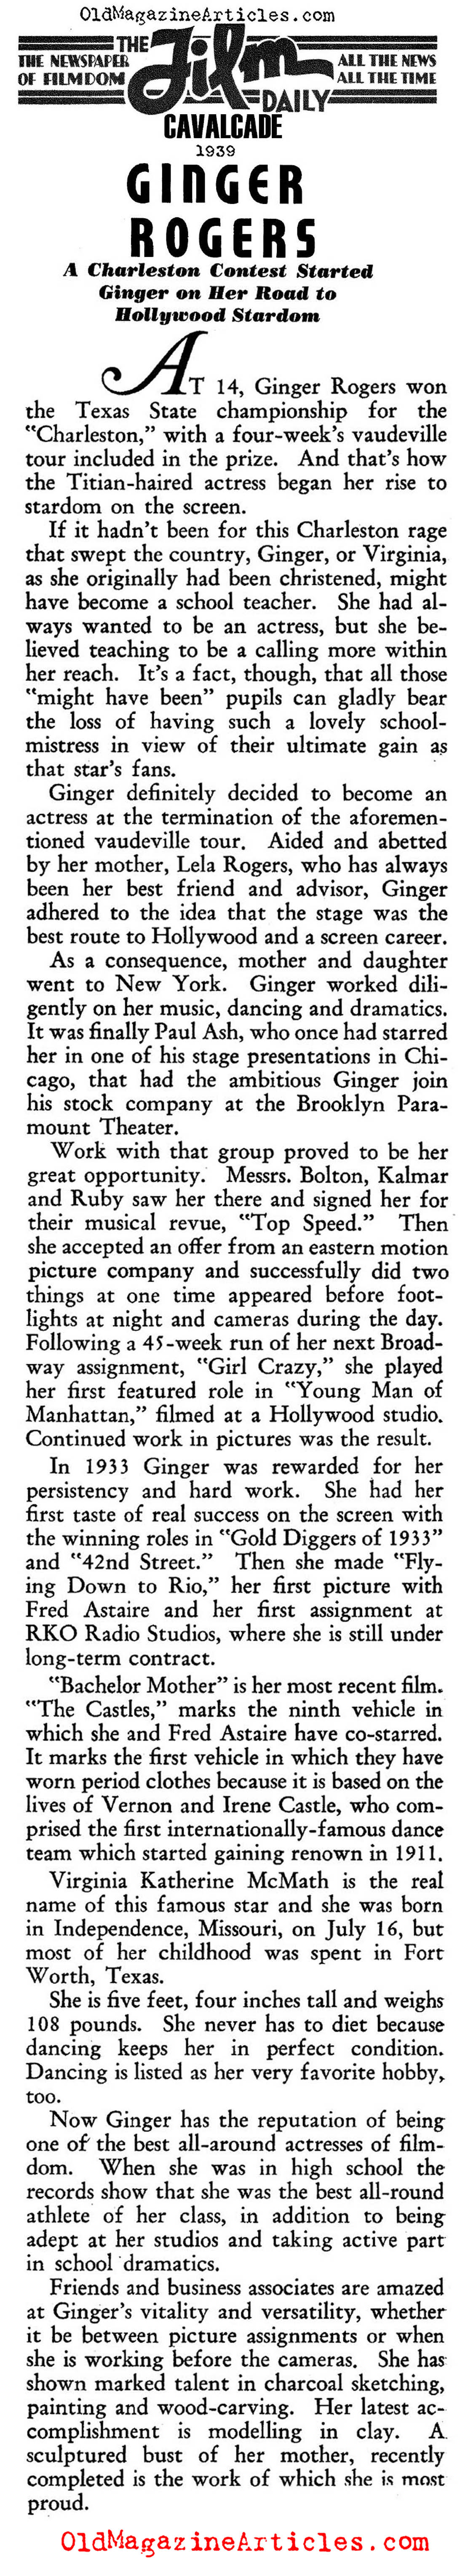 Ginger Rogers (Film Daily, 1939)